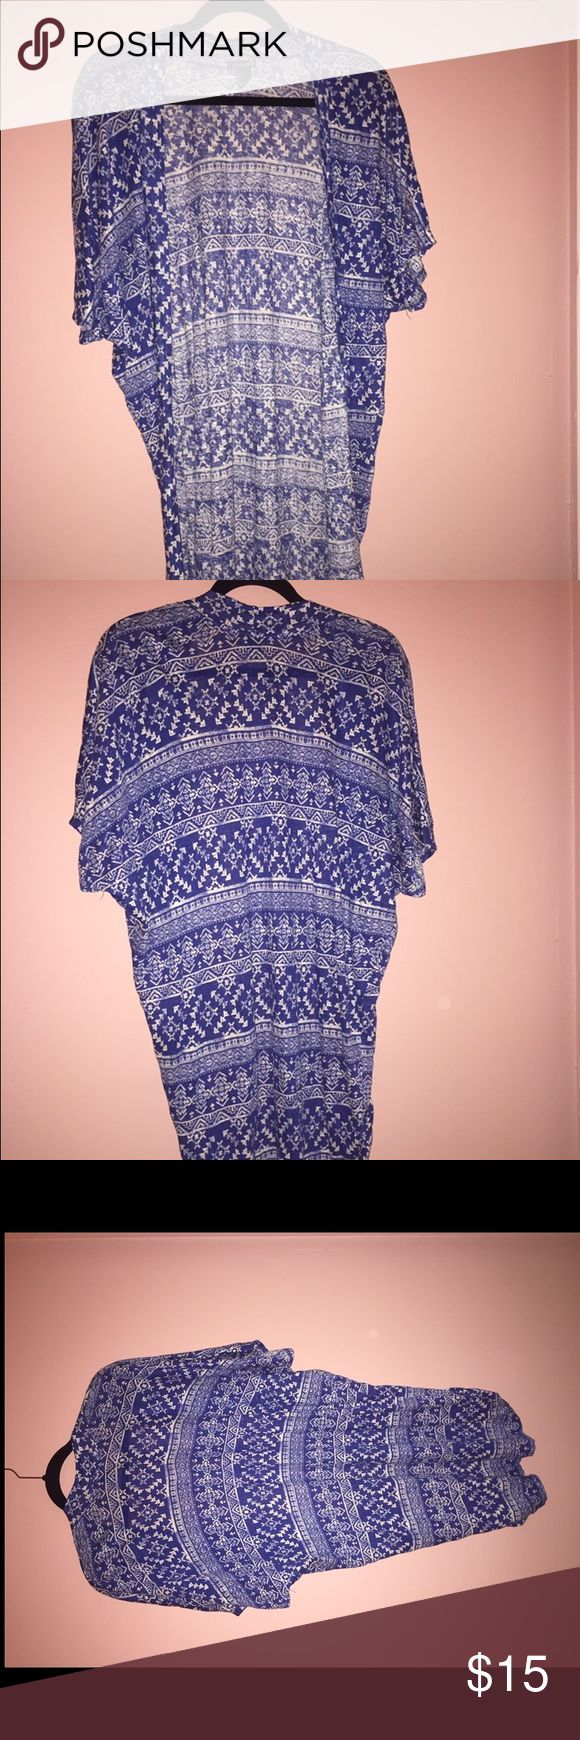 A royal blue and white cardigan A royal blue and white cardigan with an Aztec patten. It's made out of a thin light weight material. This has been worn maybe 10 times at most.  I'm 5'2 and it comes down to the back of my knees. Forever 21 Other